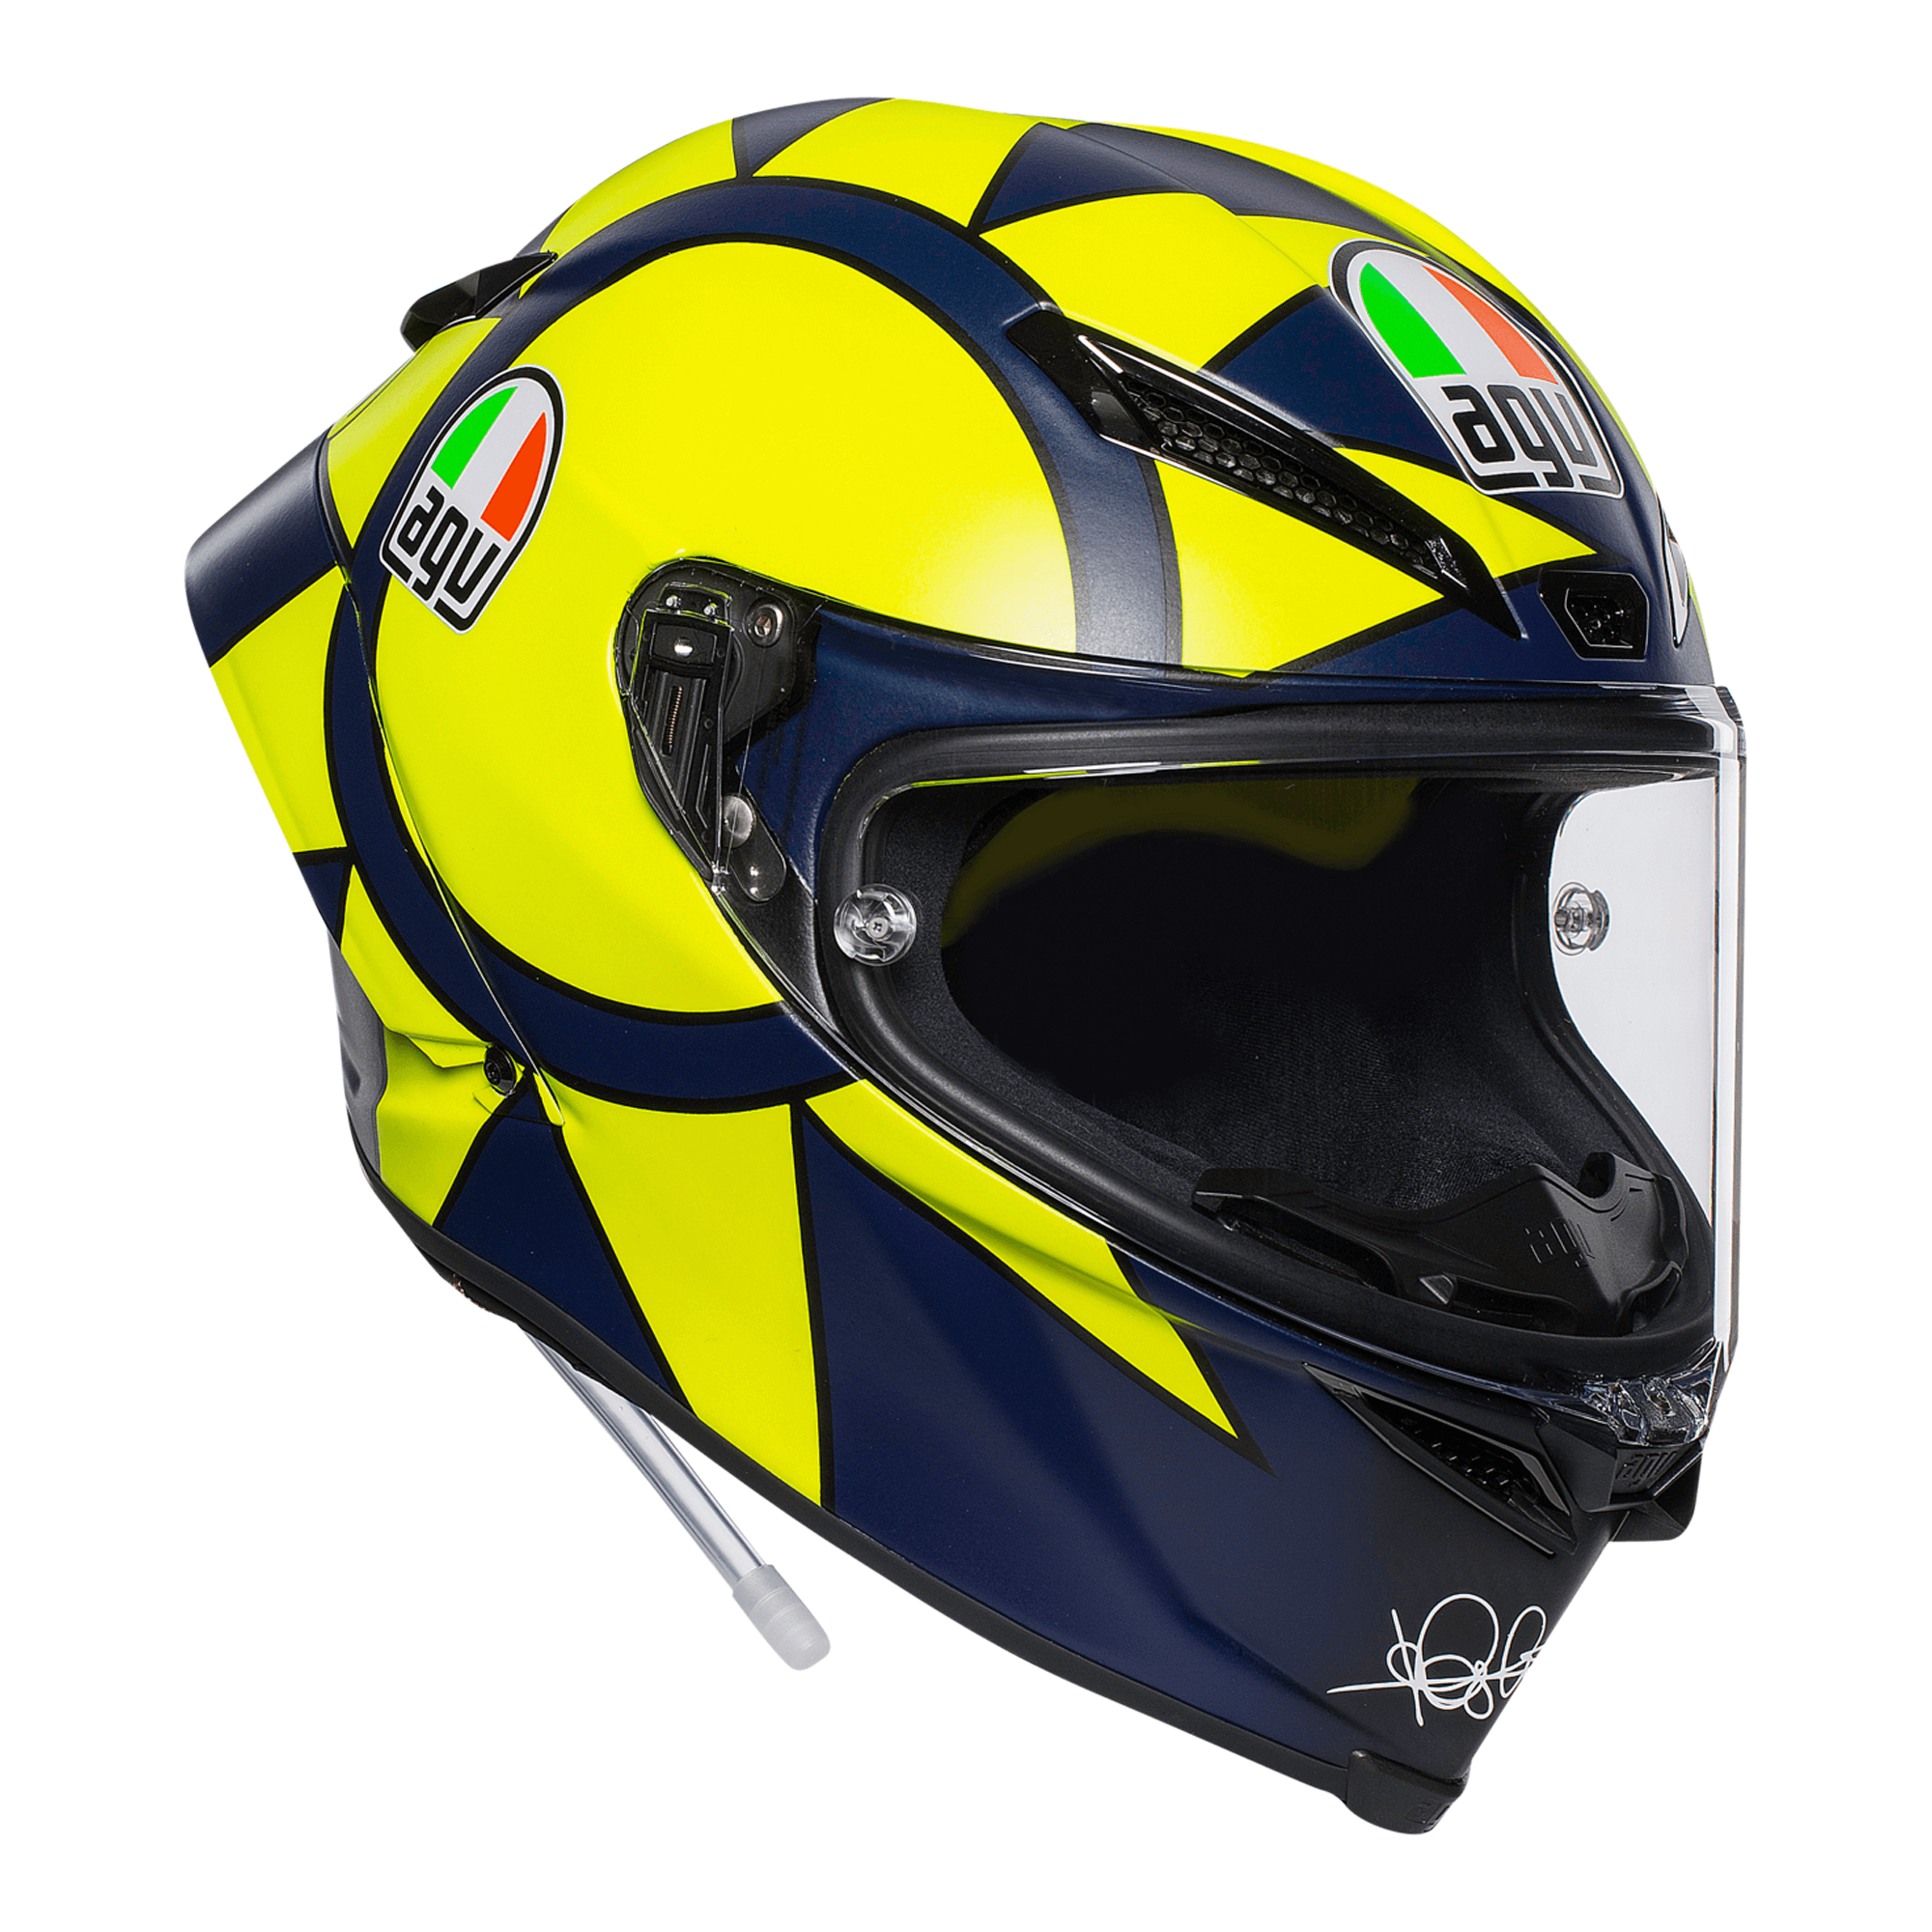 agv pista gp r soleluna 2018 agv pista gp r agv helmets. Black Bedroom Furniture Sets. Home Design Ideas